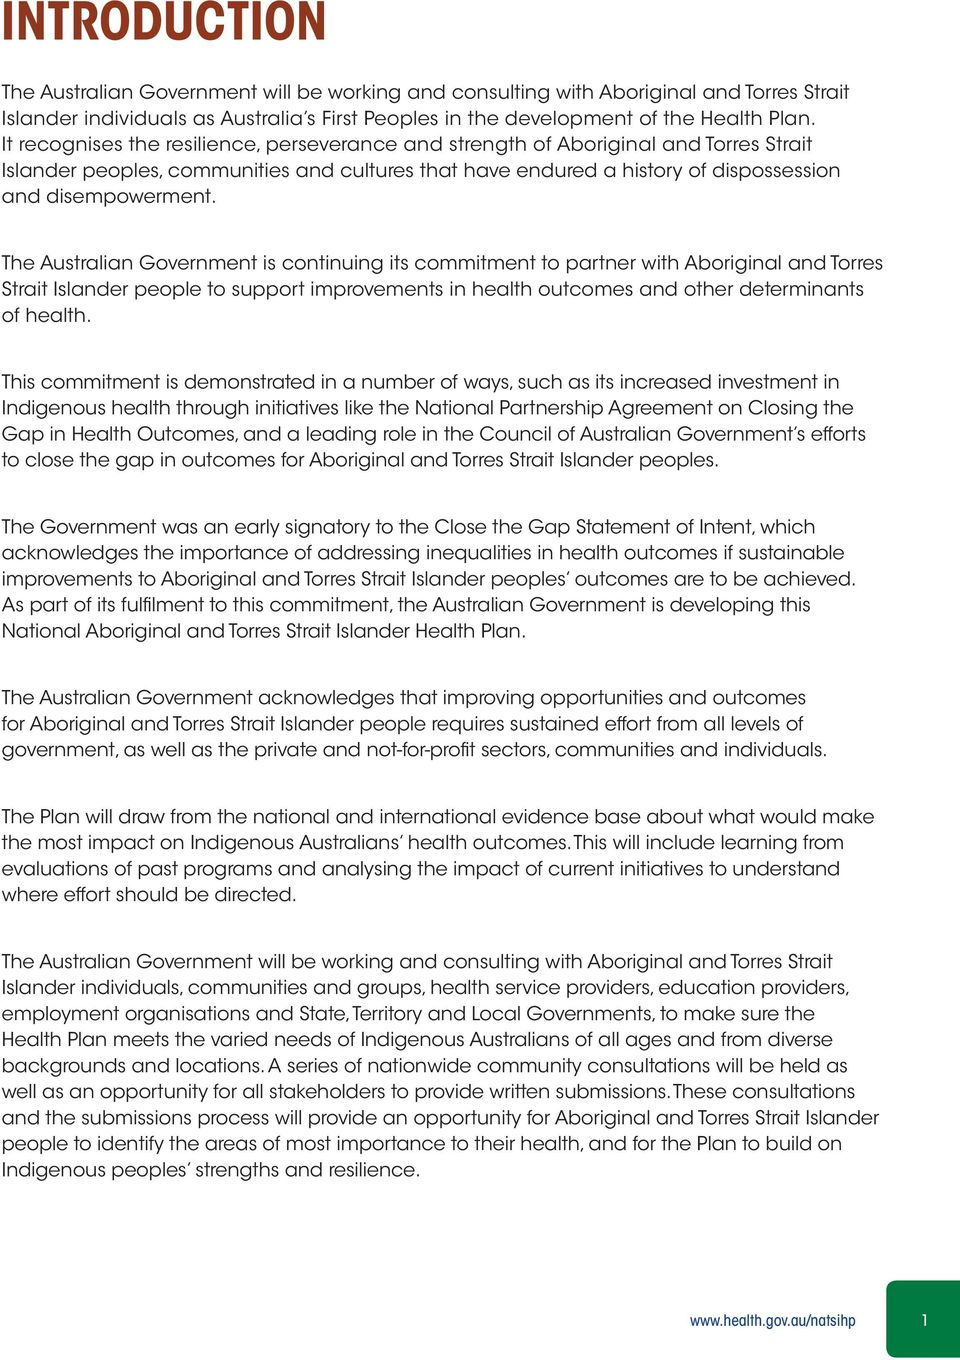 The Australian Government is continuing its commitment to partner with Aboriginal and Torres Strait Islander people to support improvements in health outcomes and other determinants of health.